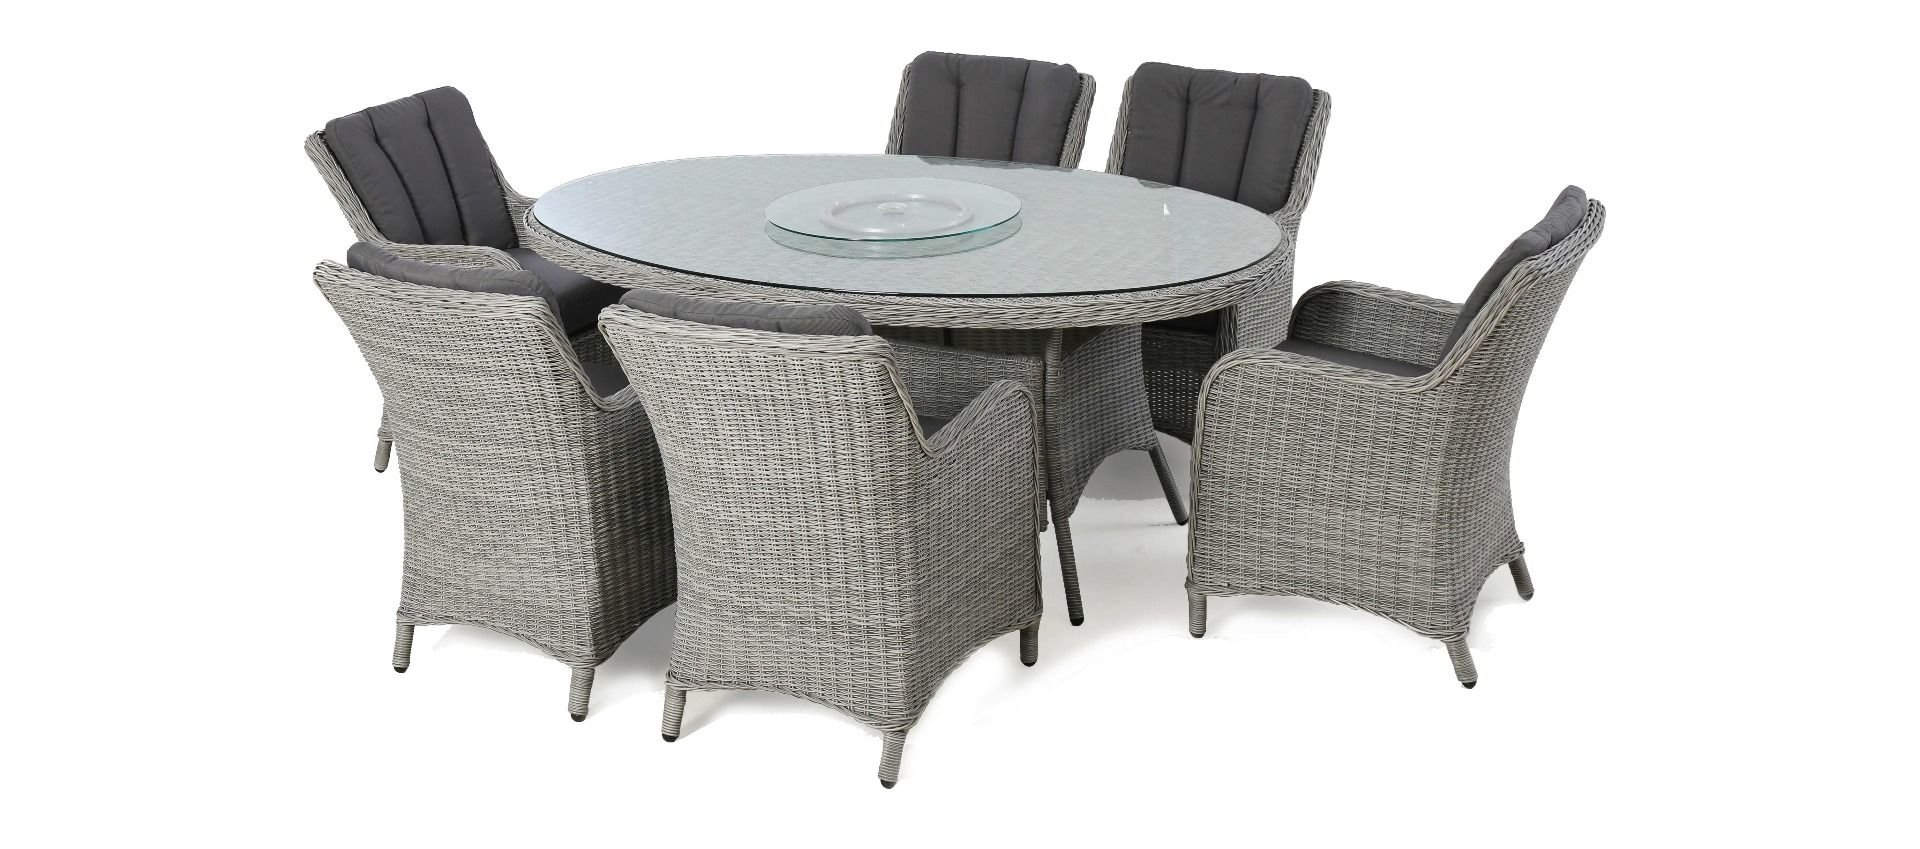 maze rattan ascot 6 seat oval dining set with waterproof cushions